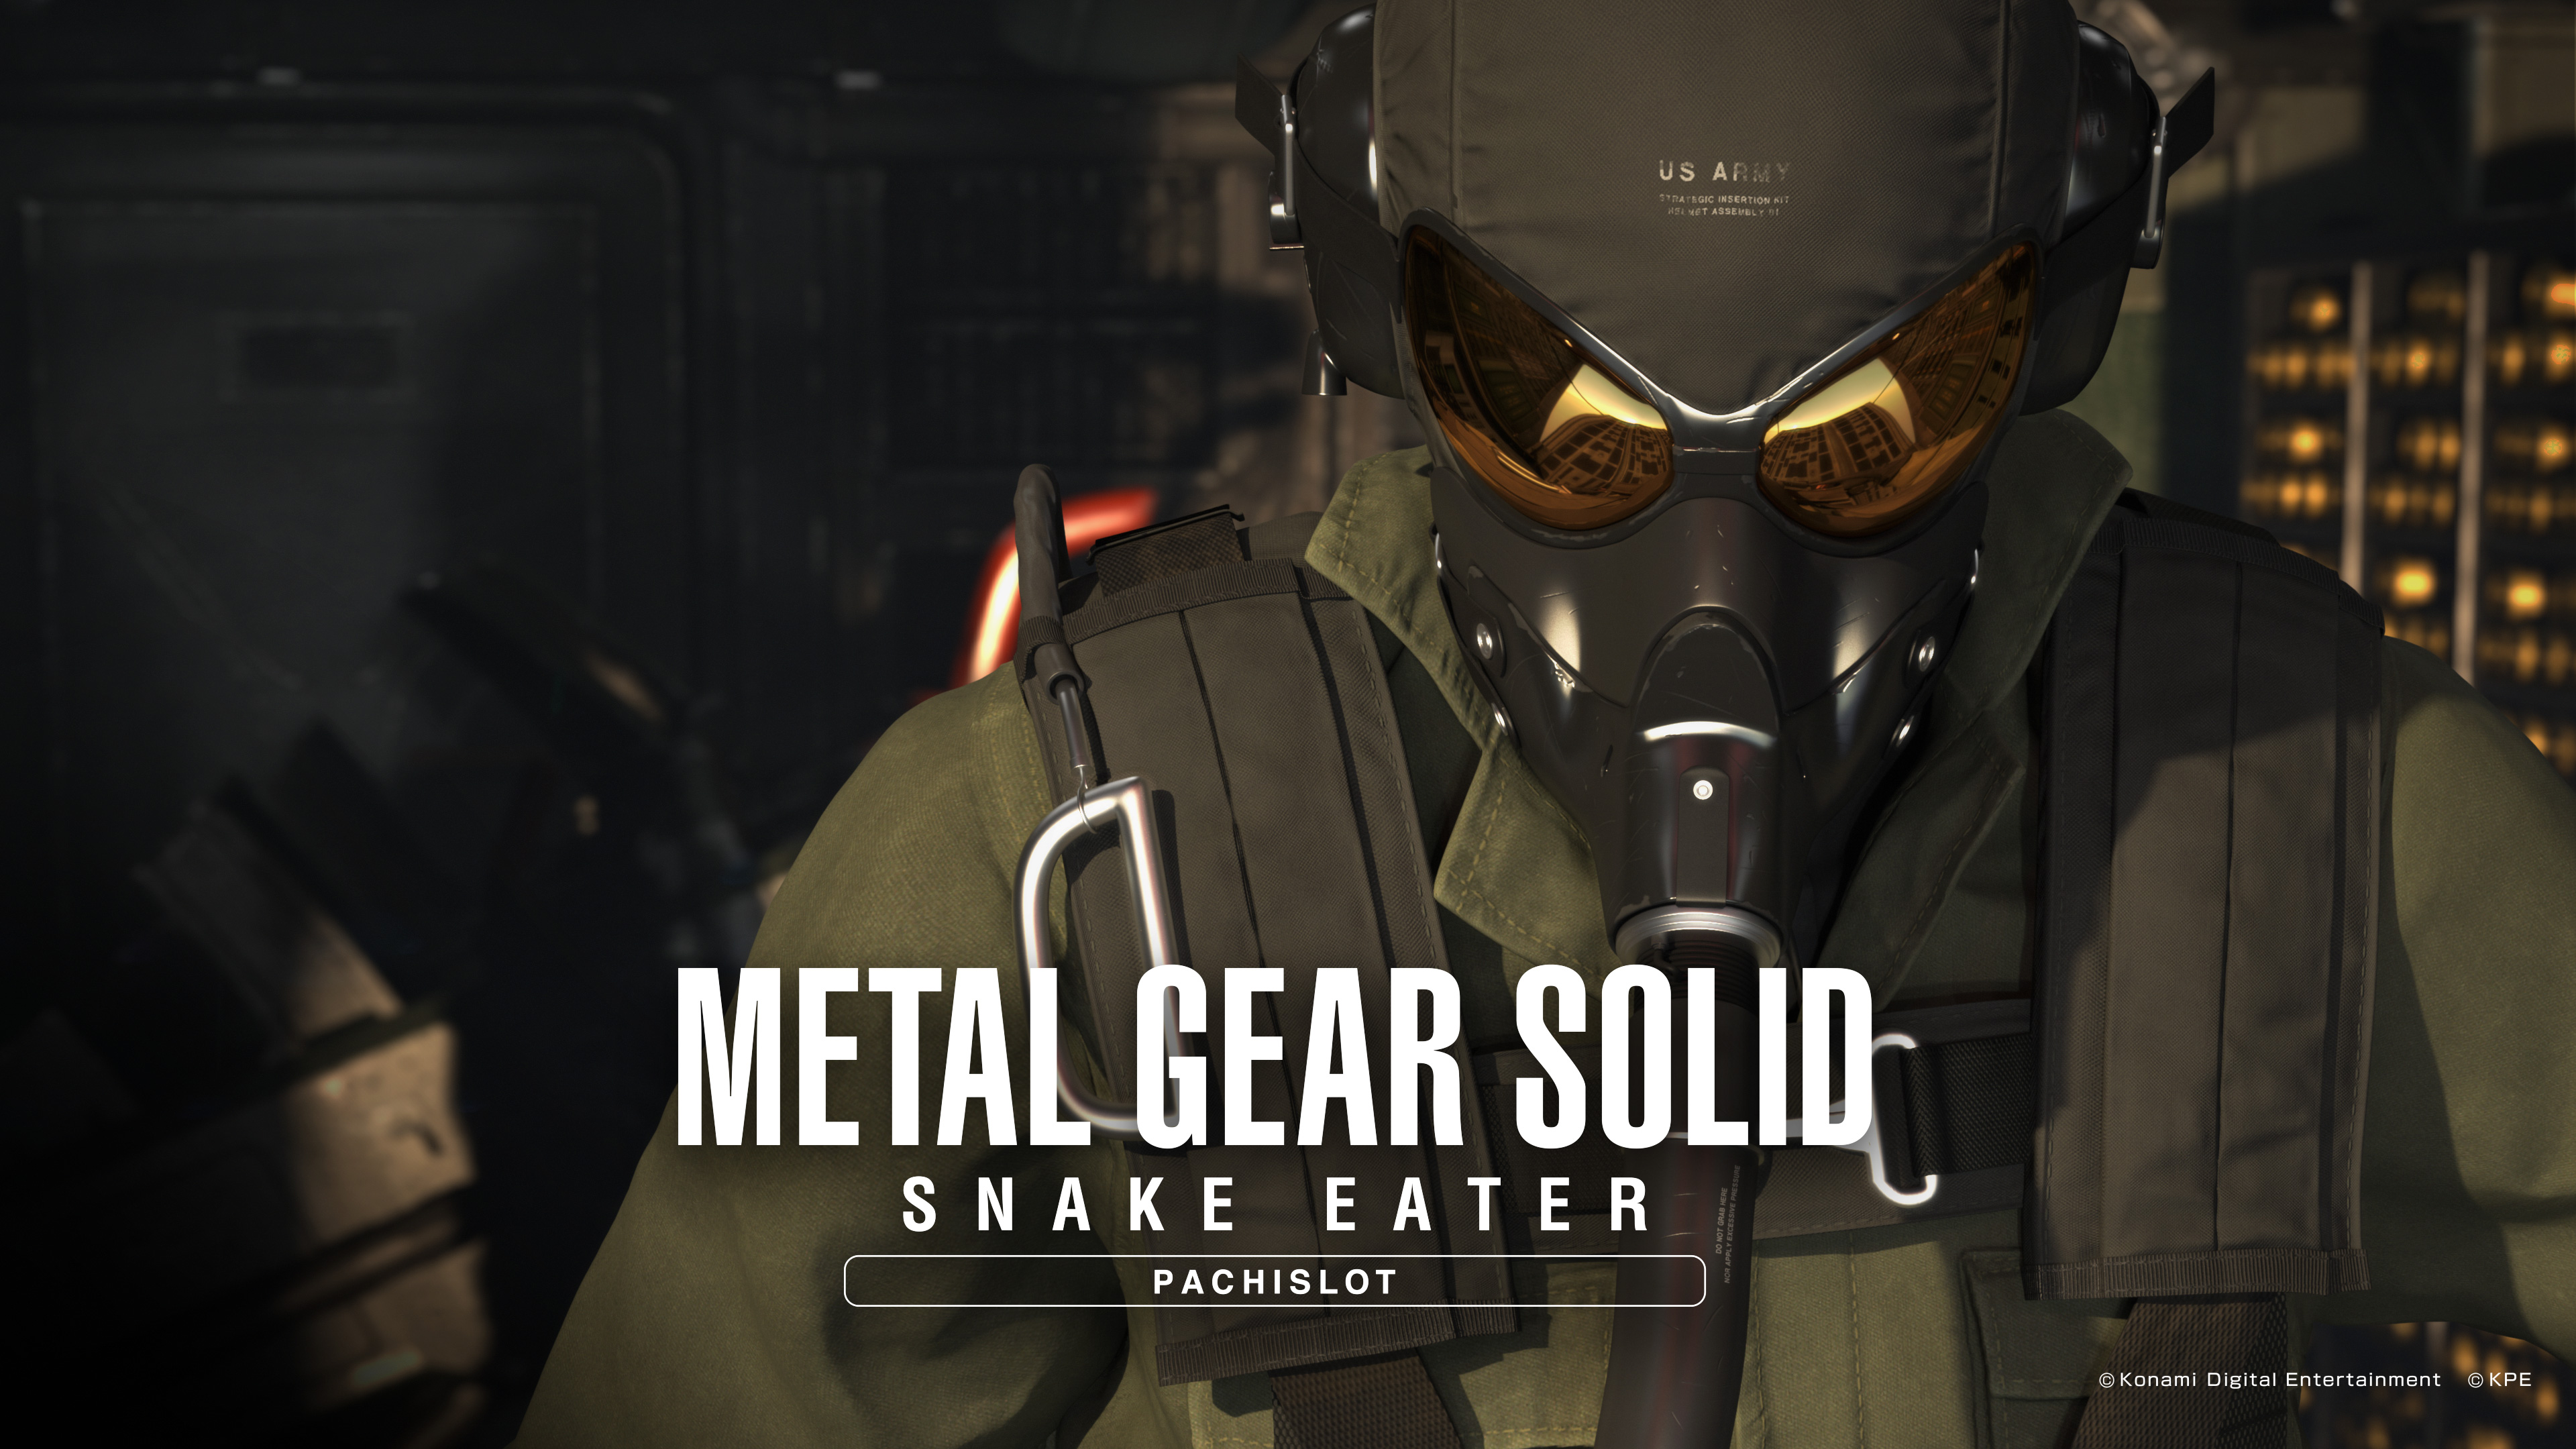 MGS Snake Eater Pachislot Wallpaper PC 3